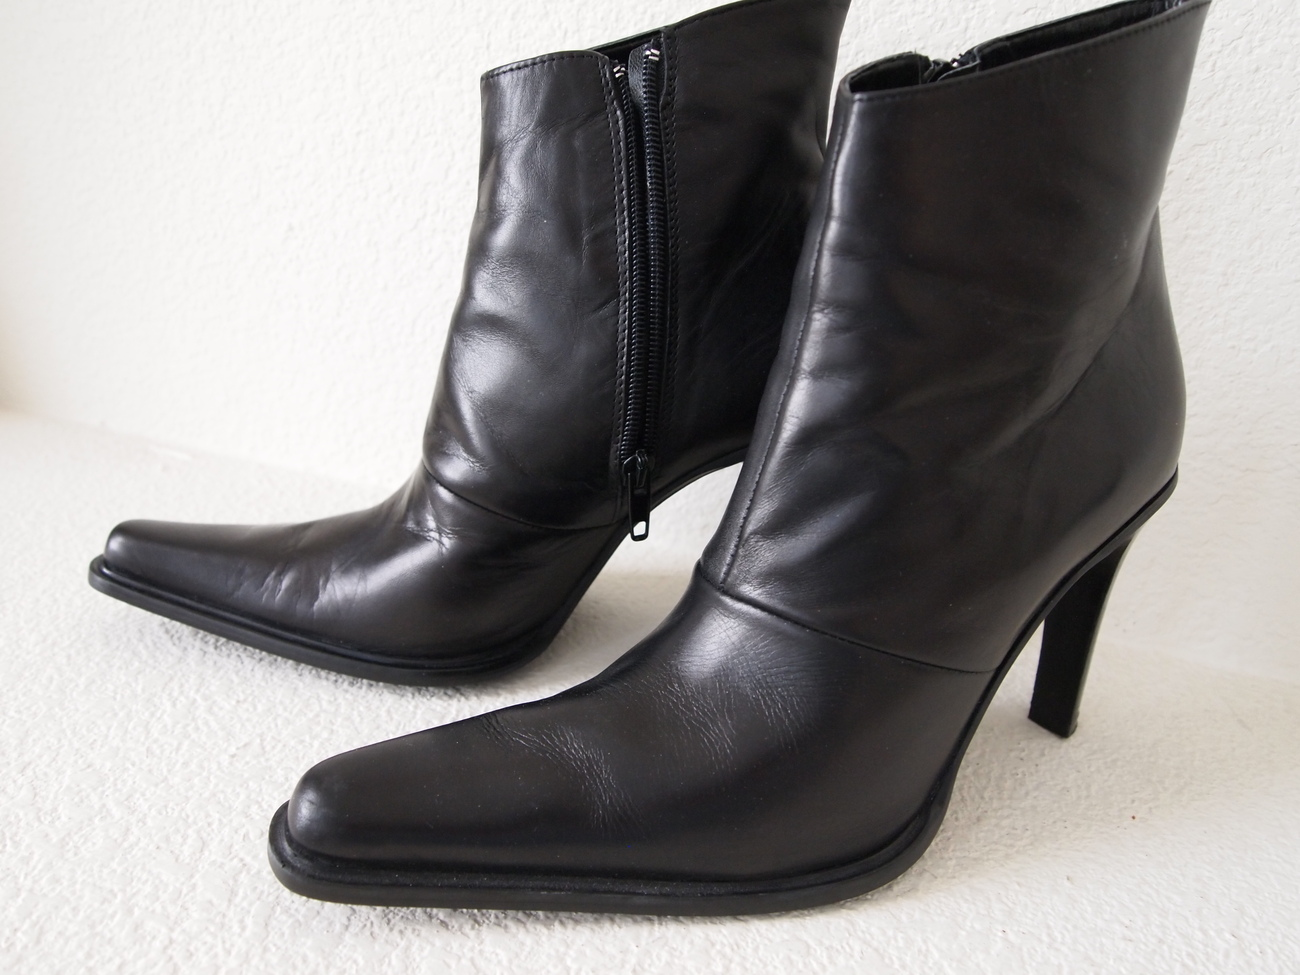 Benetton Black Leather Ankle Boots 38